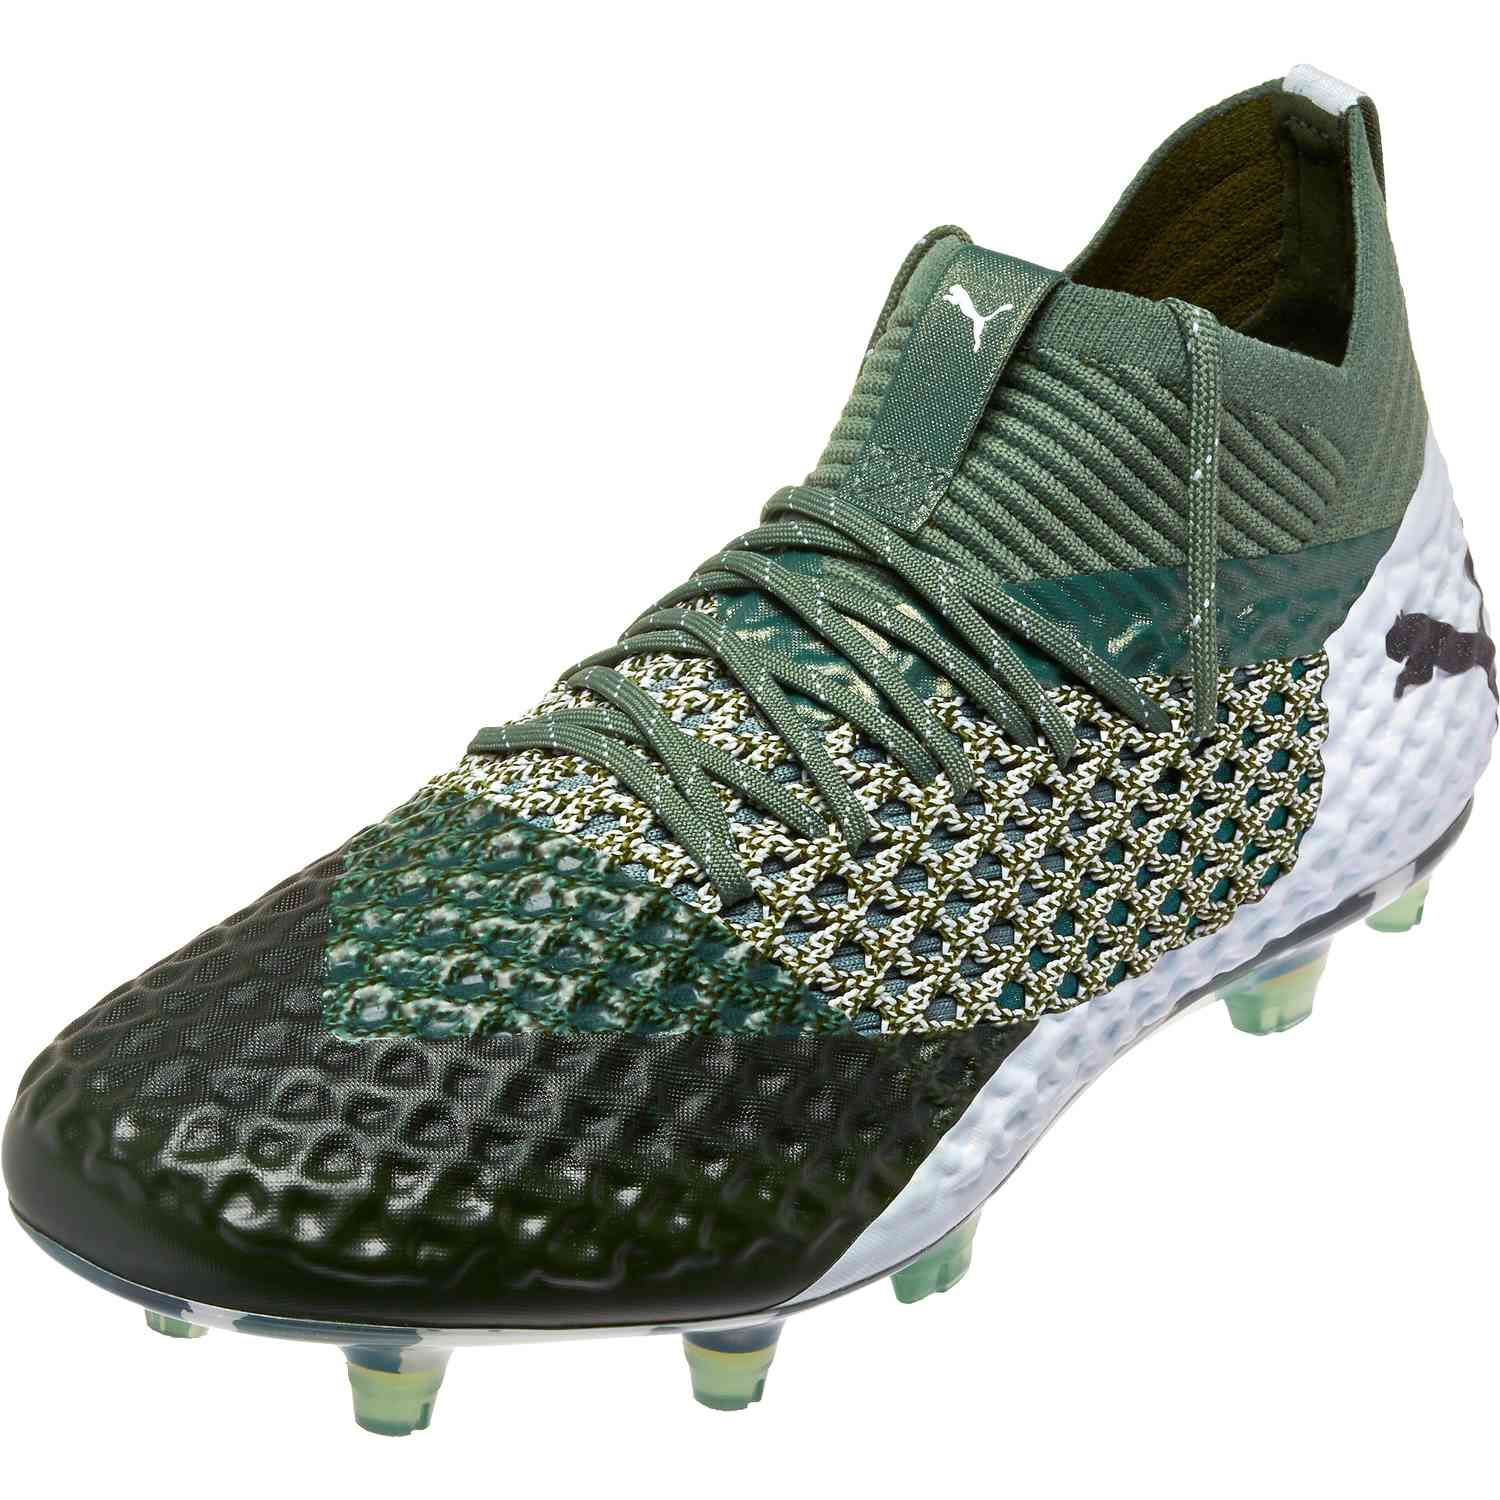 532d2ca73 These beautiful Puma Future 2.1 Netfit cleats are from Mars! Buy them at  SoccerPro today!